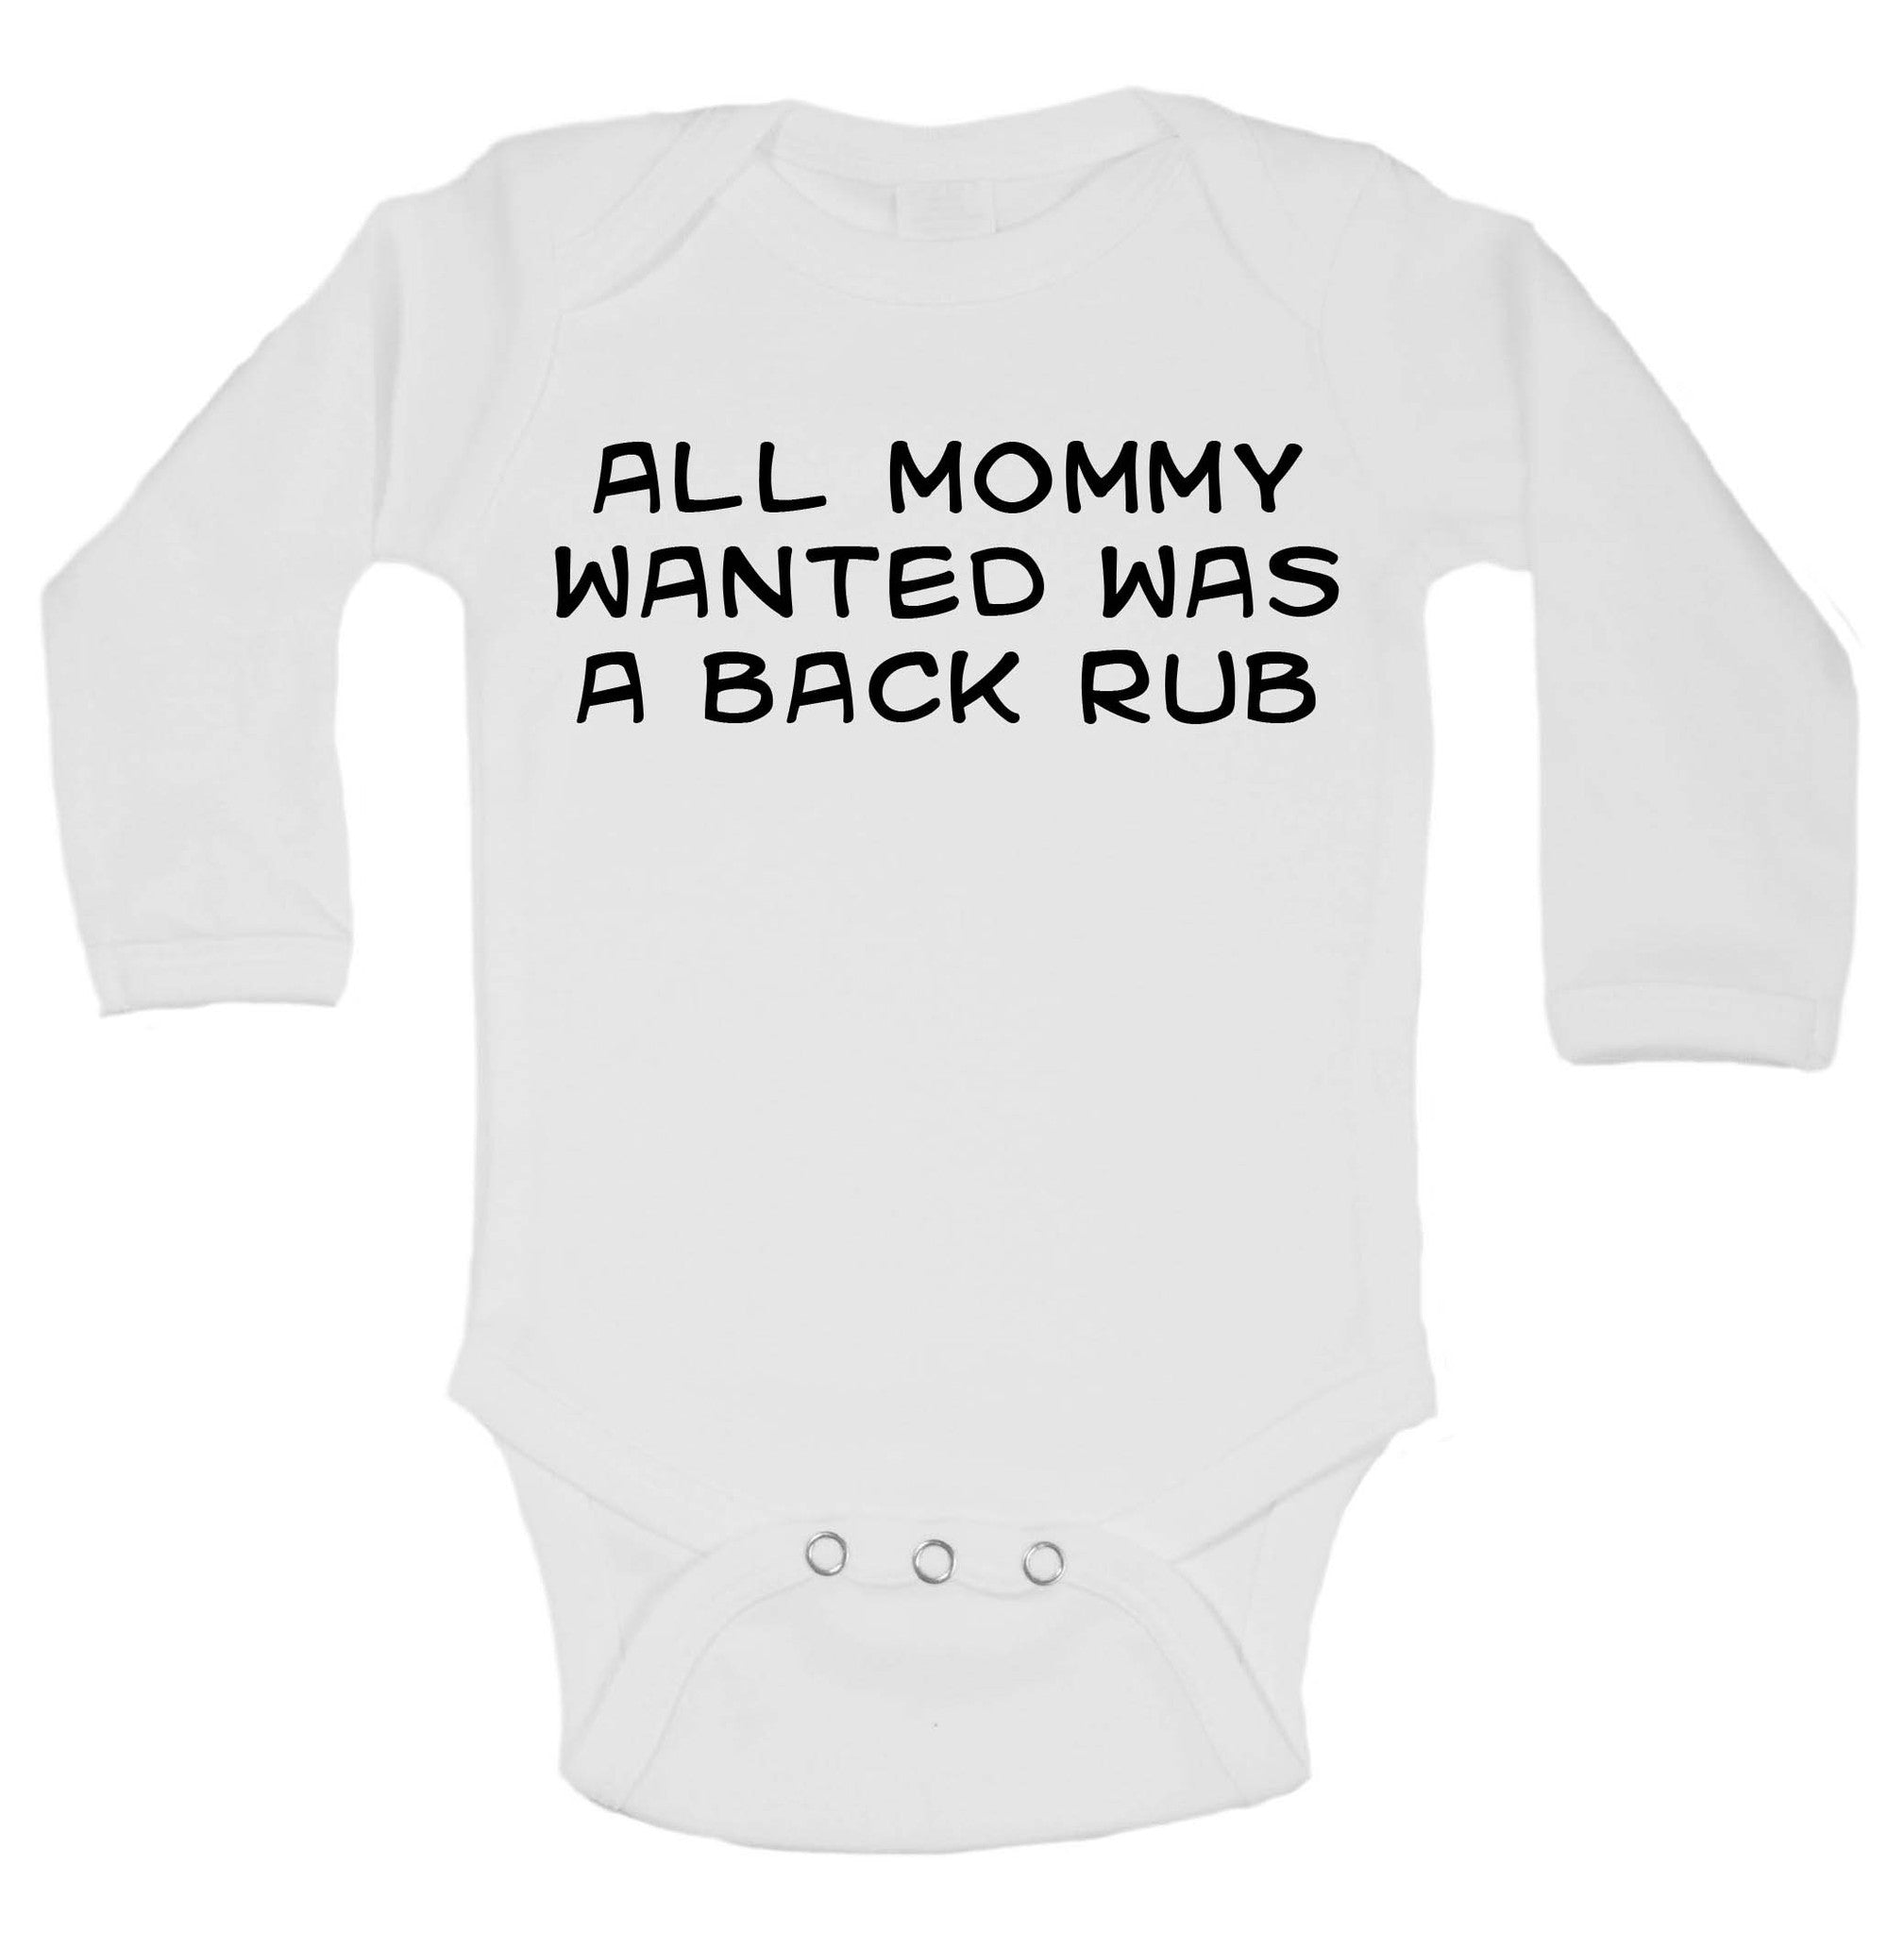 All Mommy Wanted Was A Back Rub Funny Kids Onesie - 176 - Funny Shirts Tank Tops Burnouts and Triblends  - 1